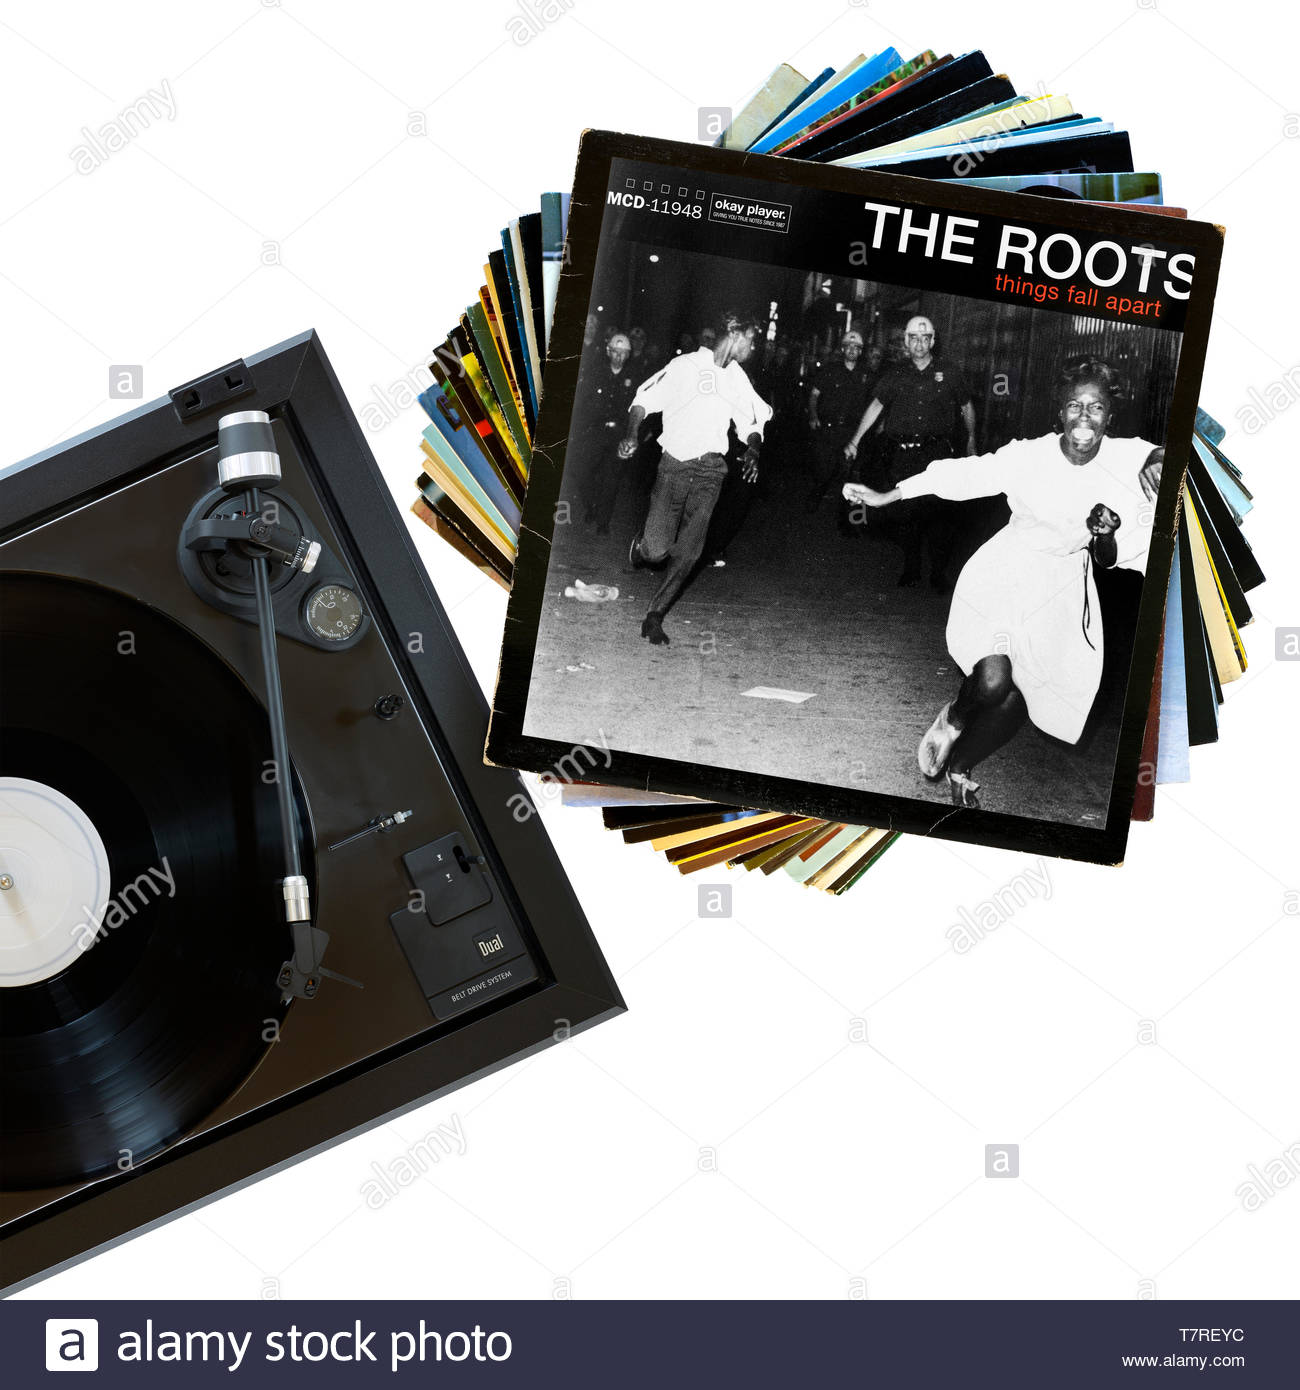 The Roots, Things Fall Apart album, record player and album, England Stock Photo